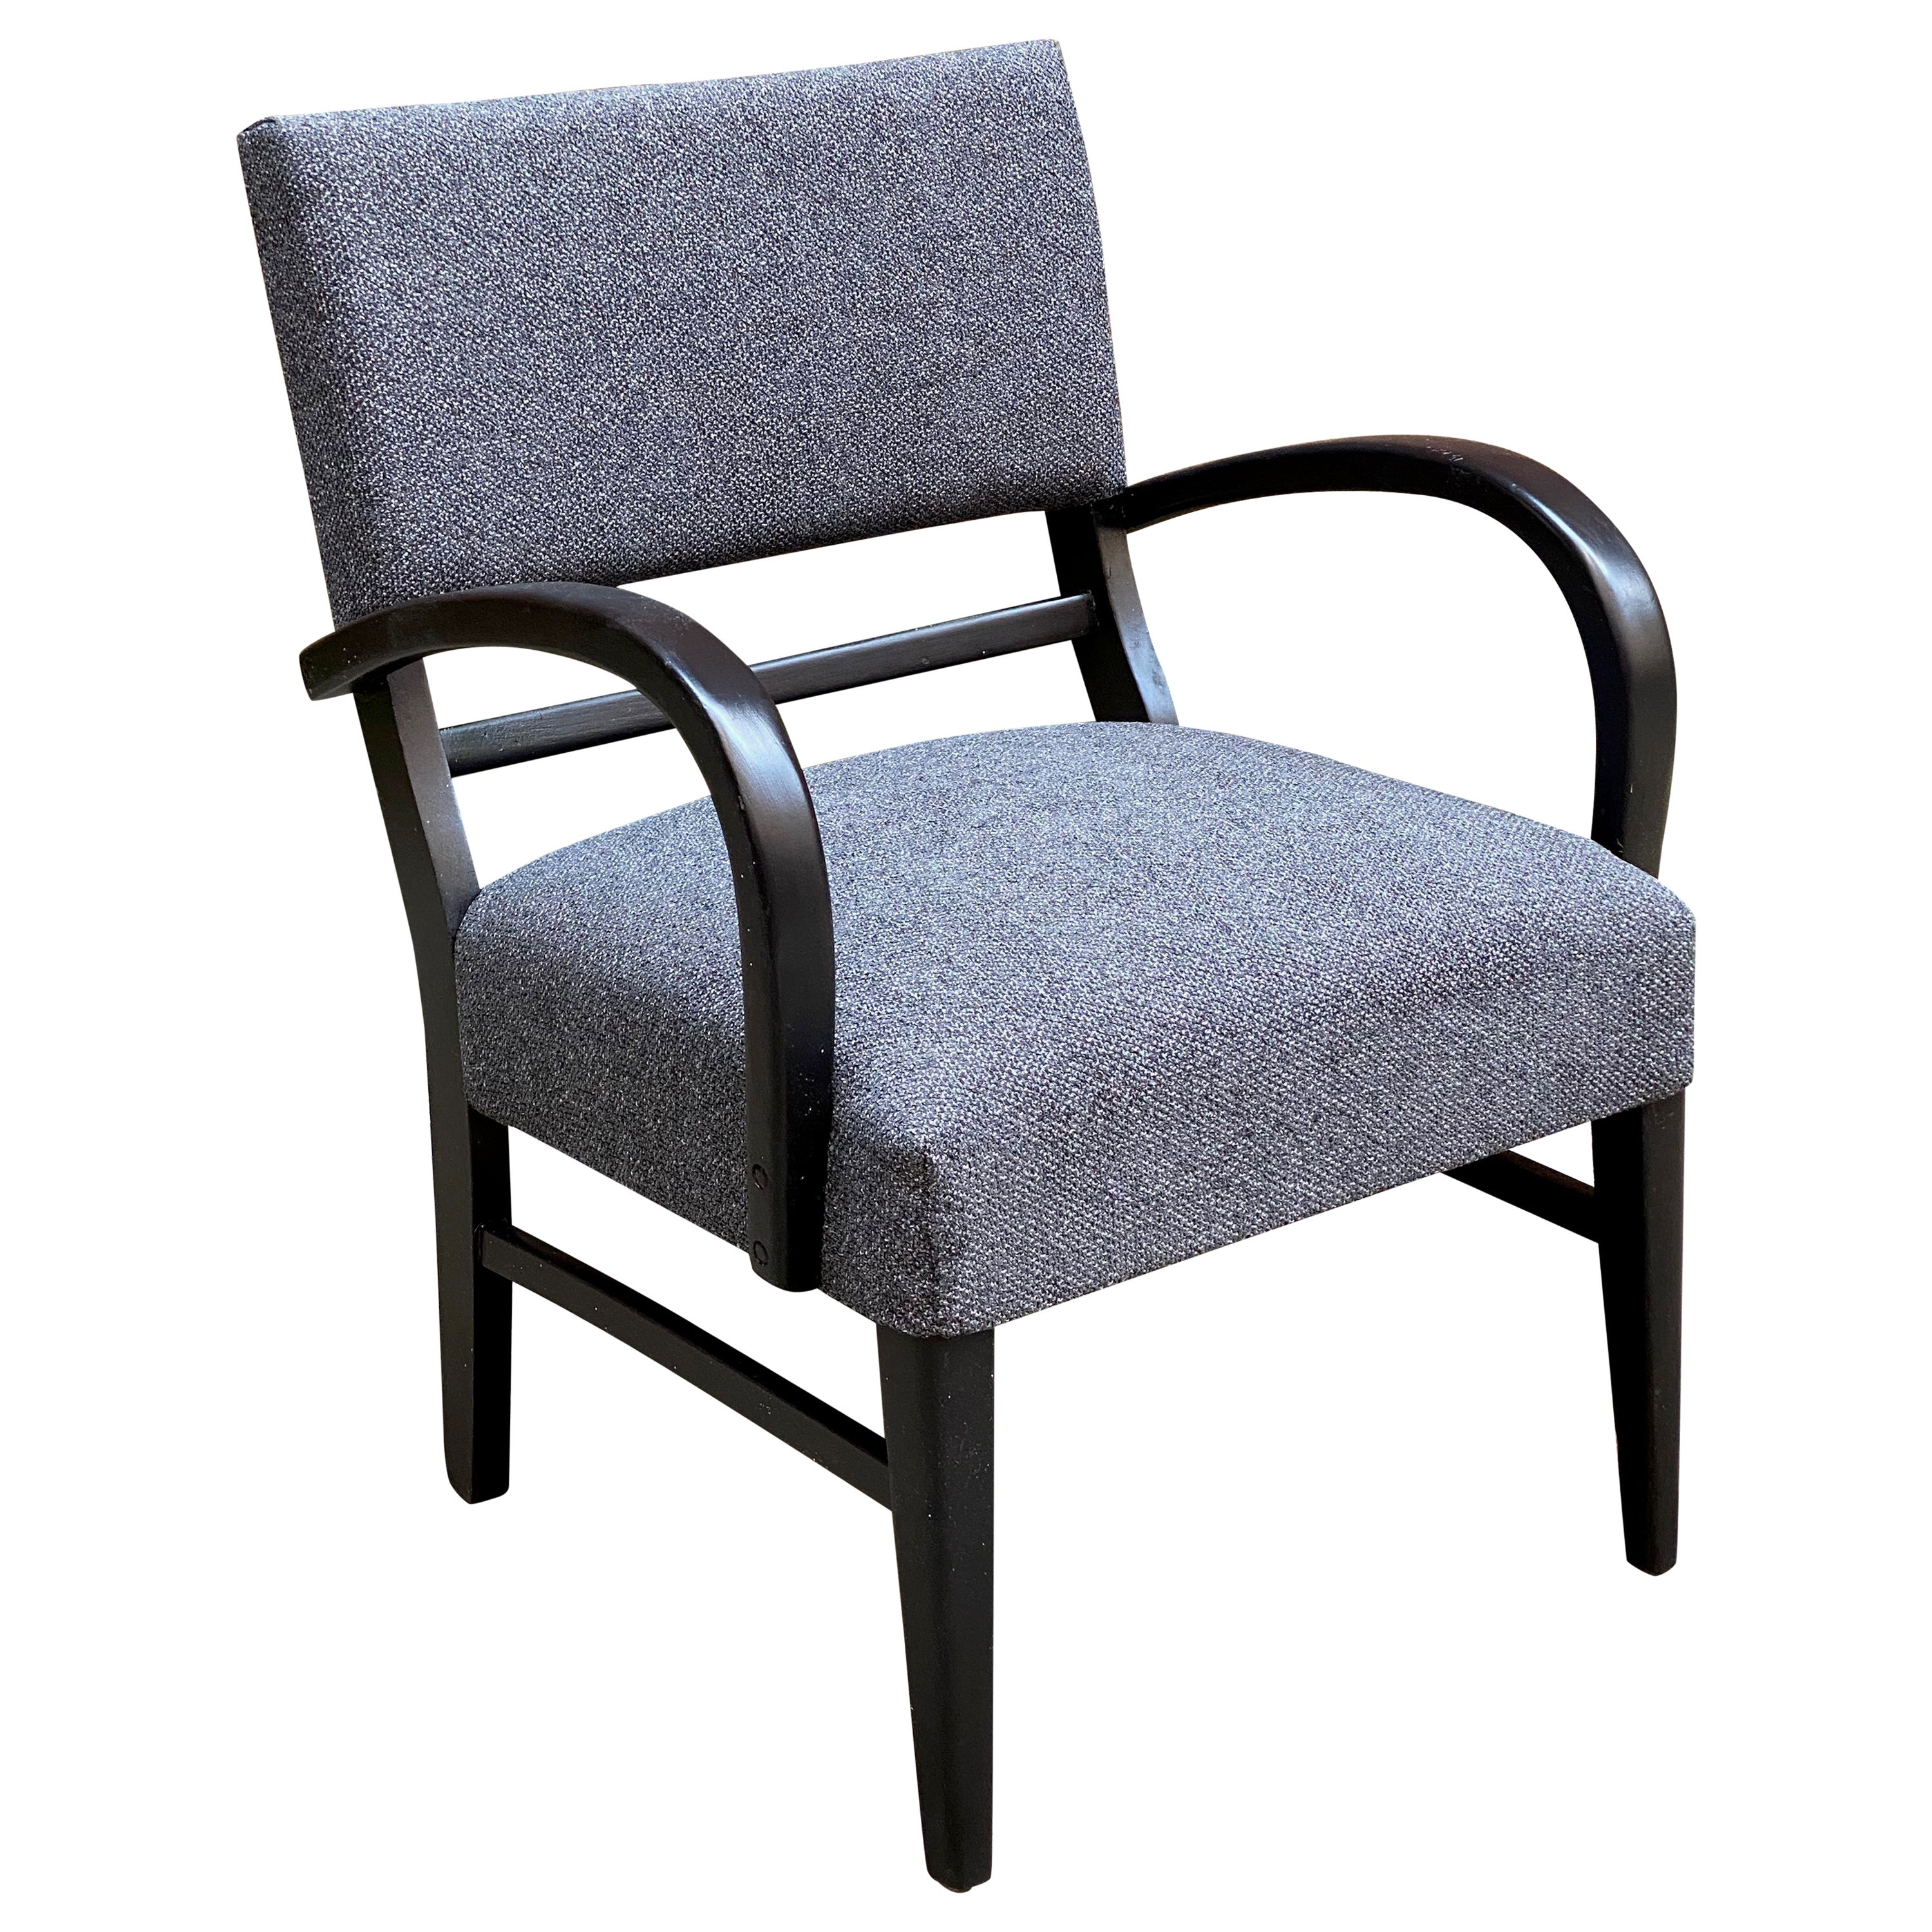 1940s Moderne Bow Arm Lounge Chair